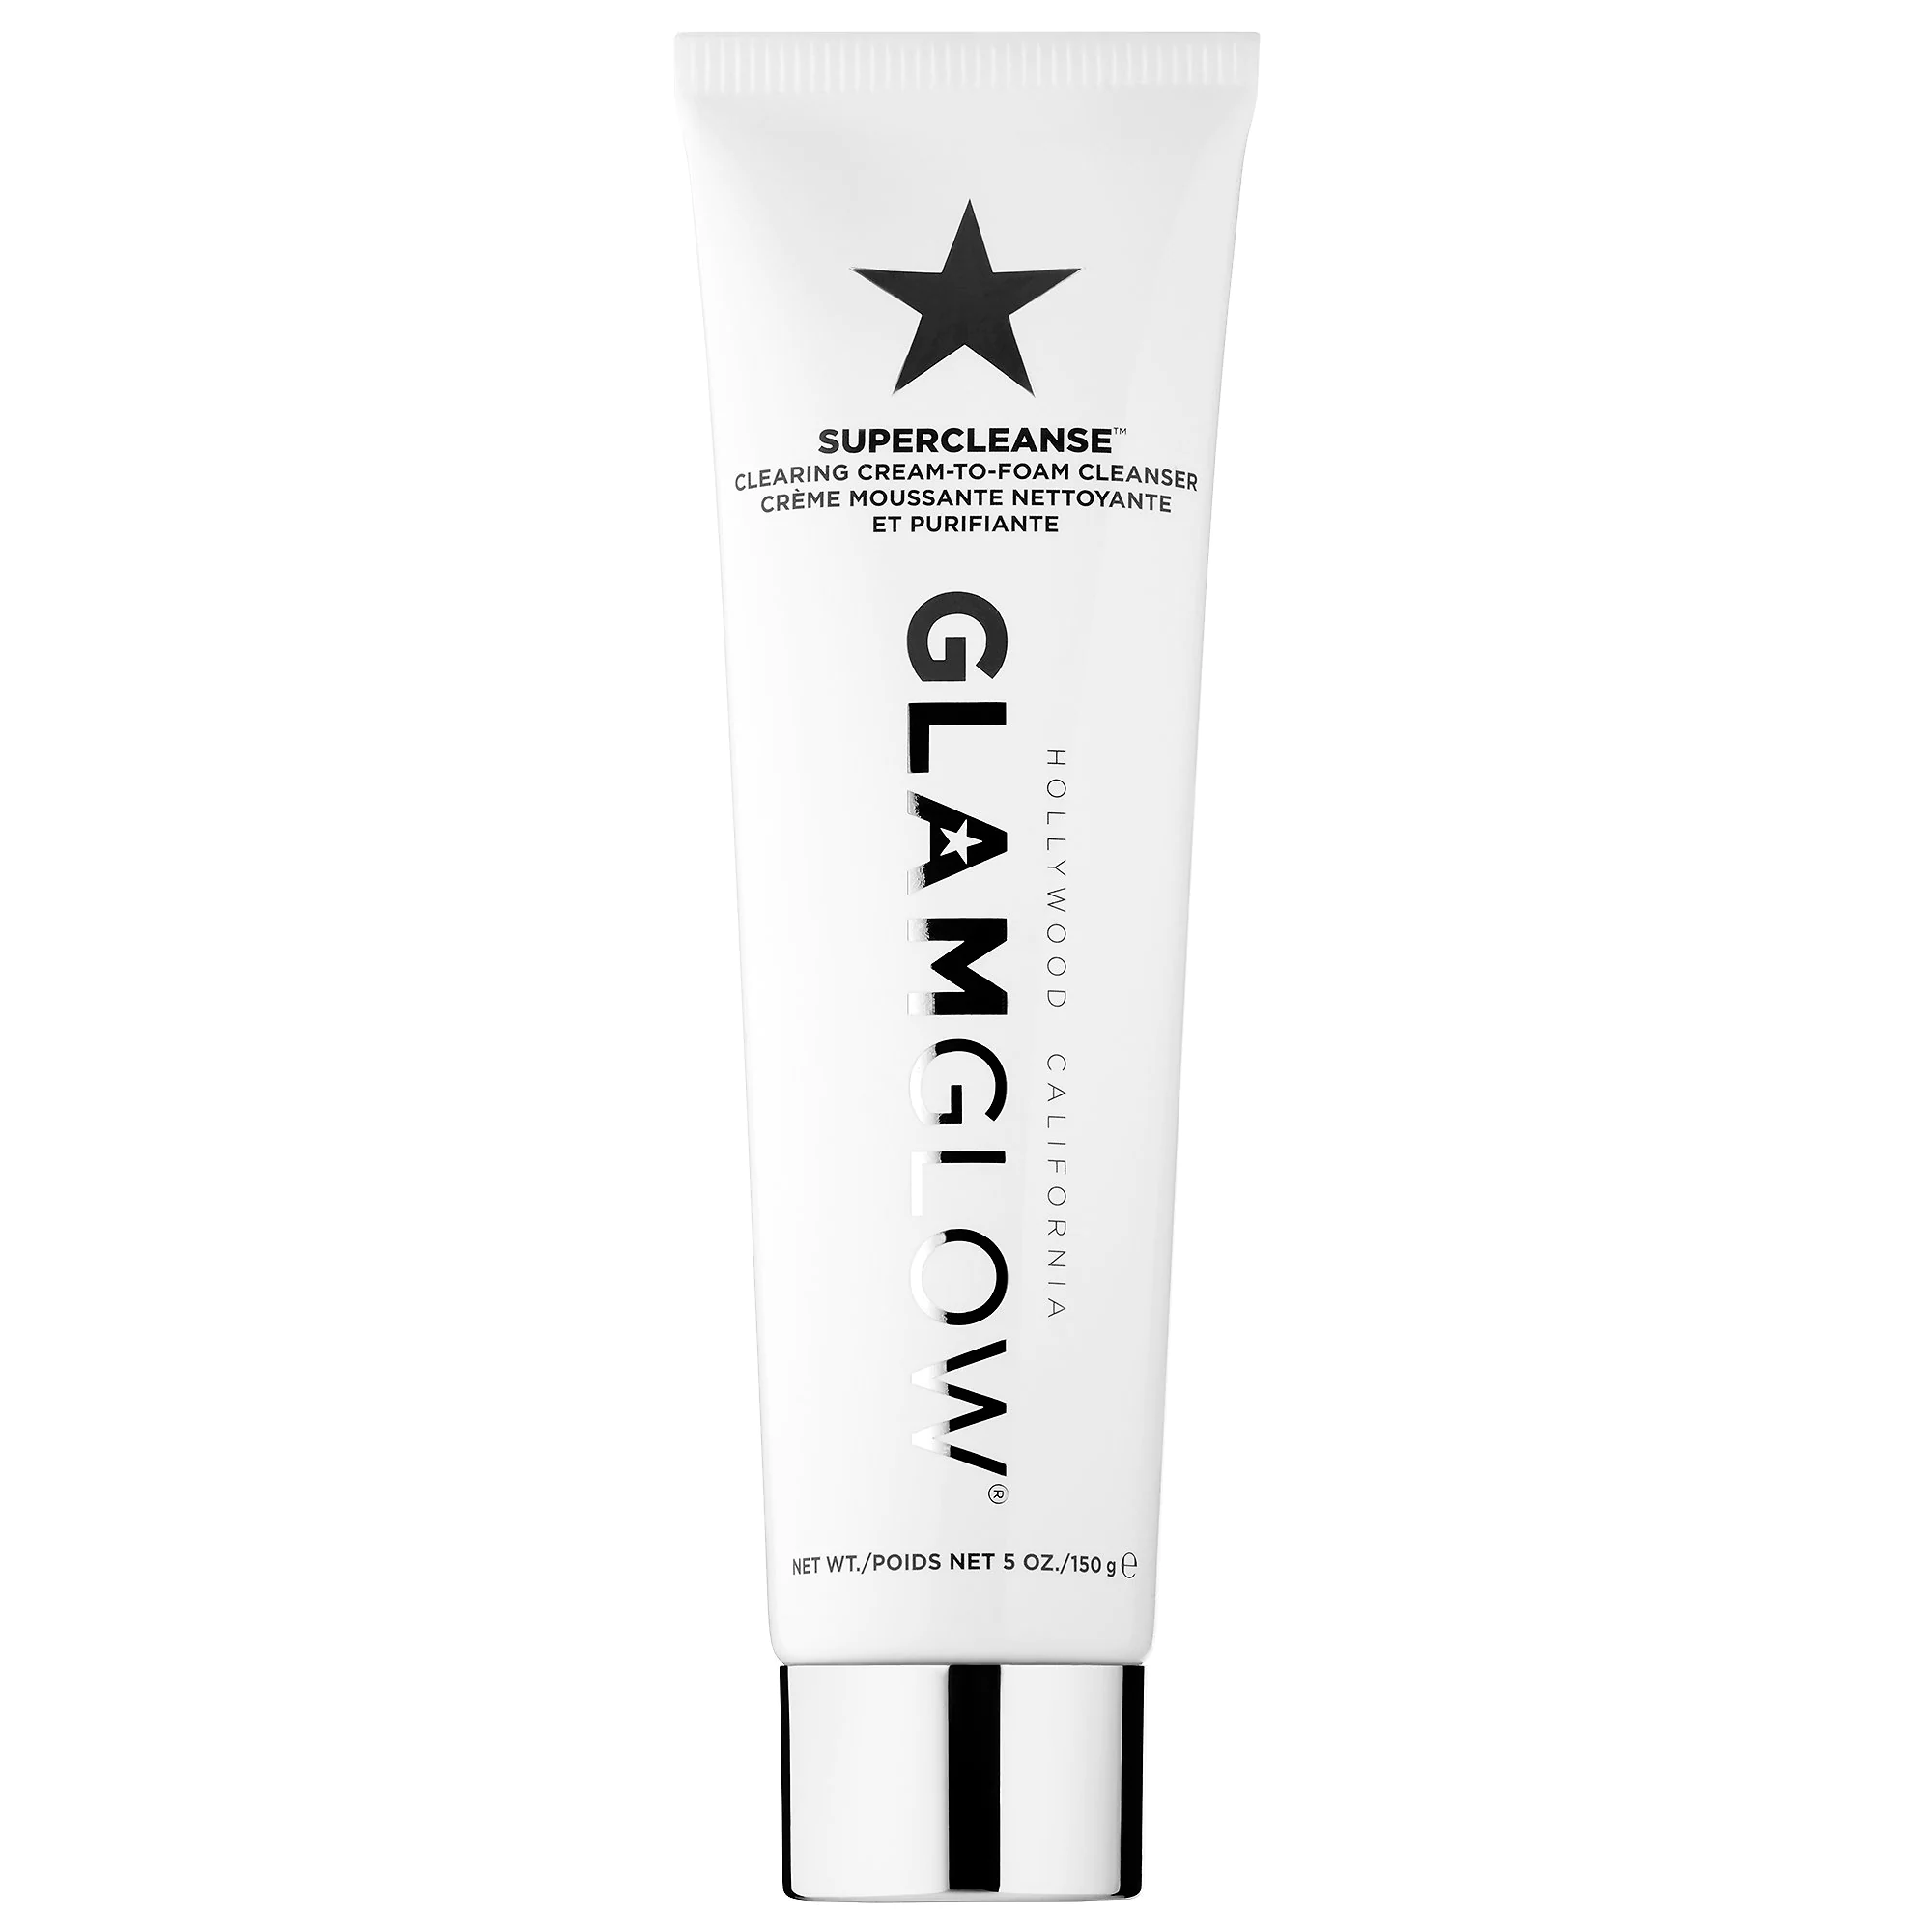 GLAMGLOW-Supercleanse™ Clearing Cream-To-Foam Cleanser